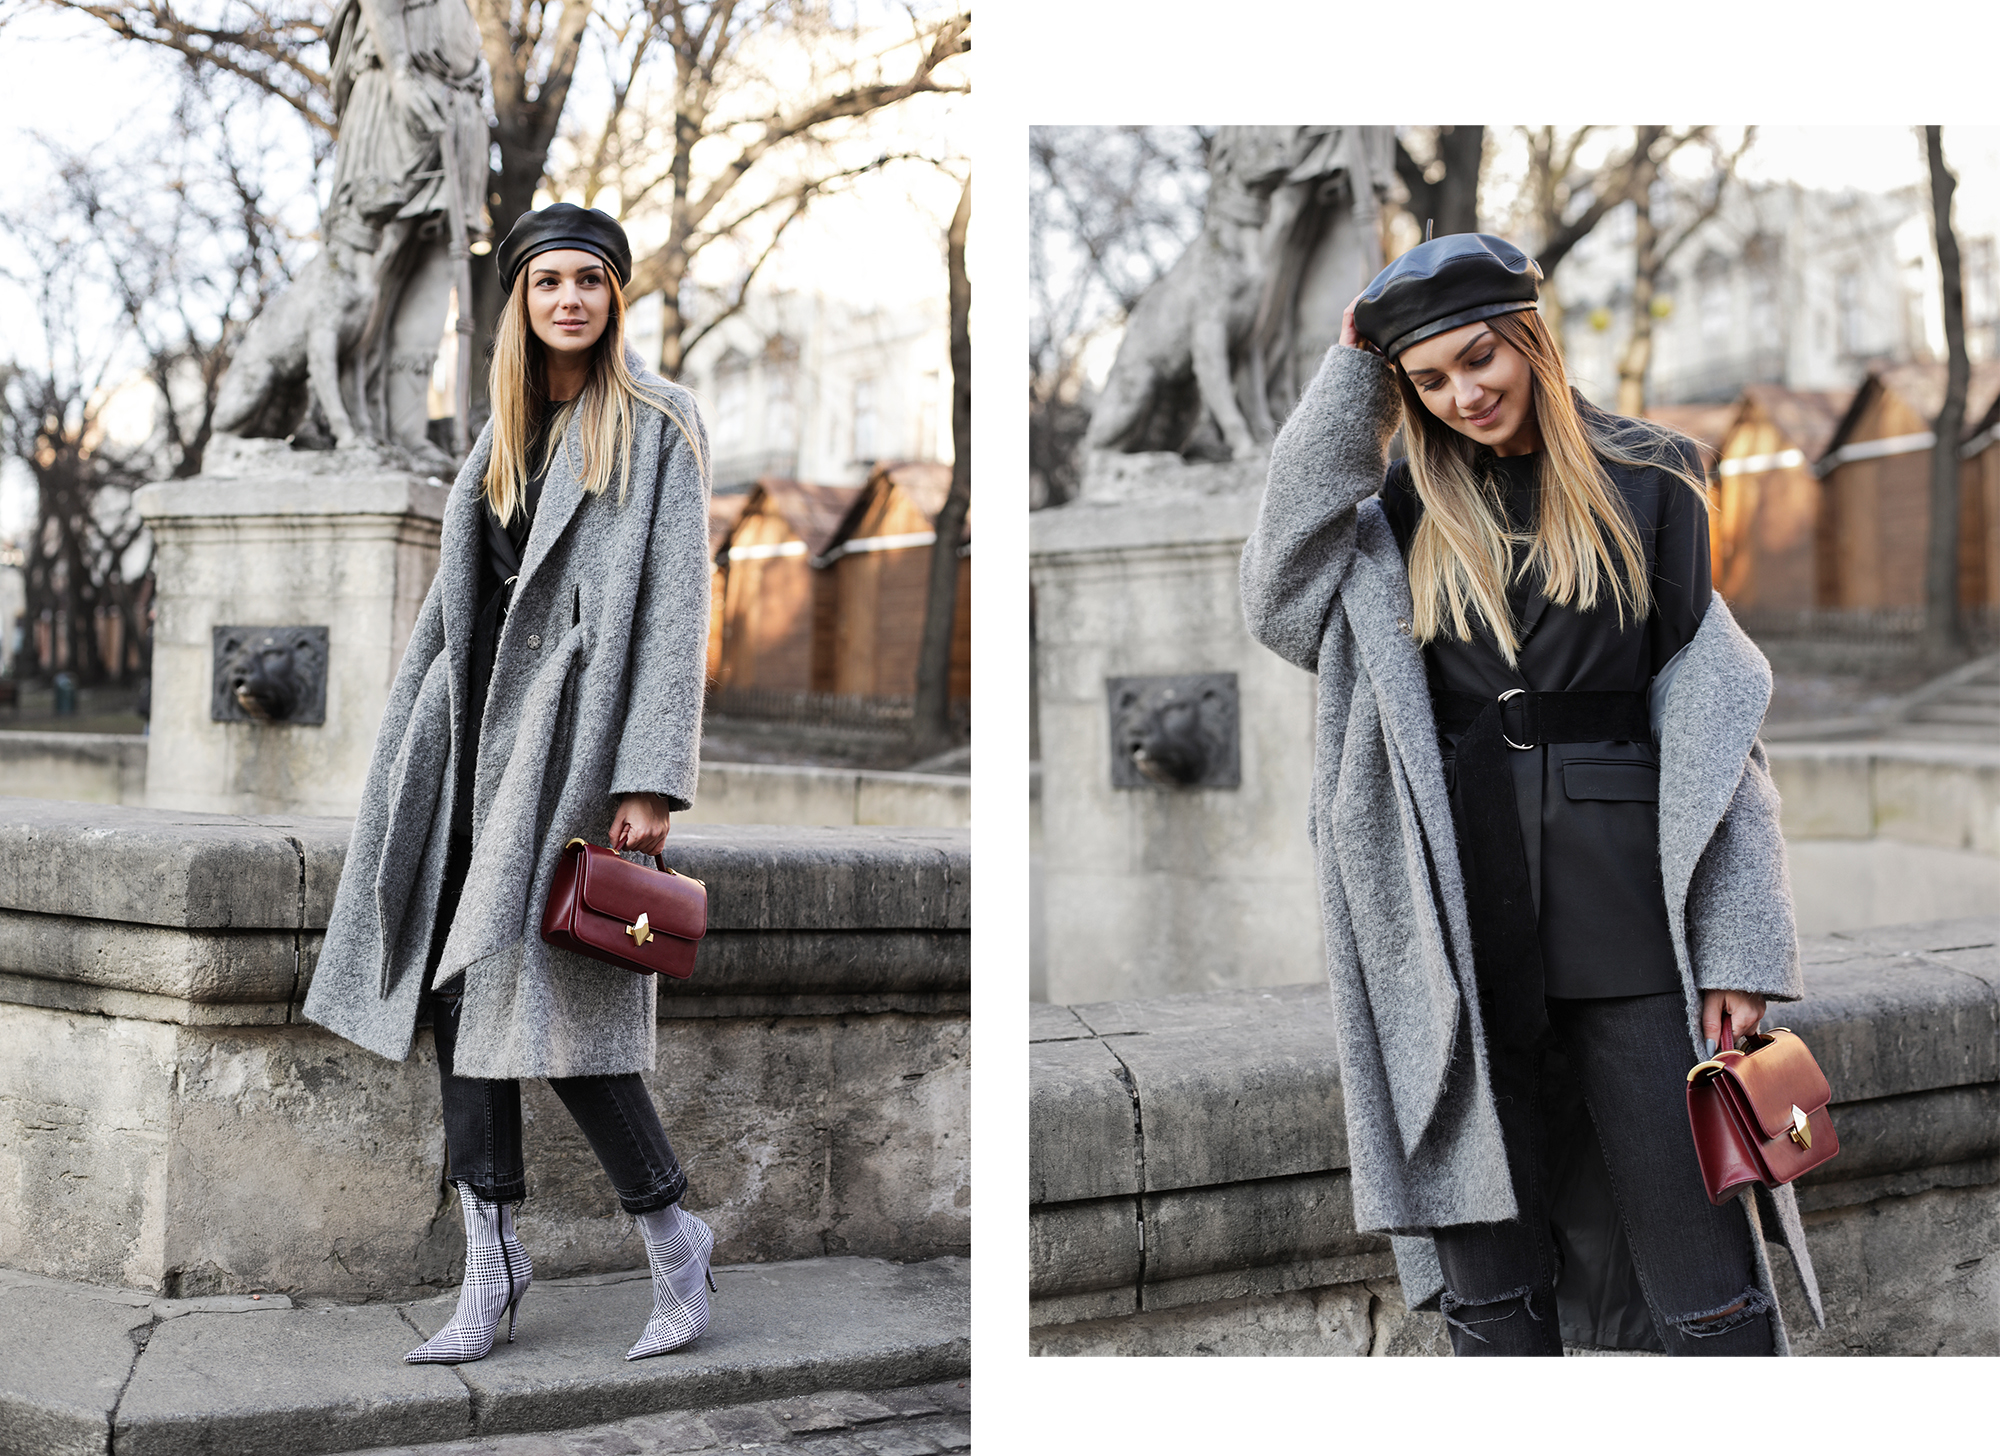 street-style-grey-coat-outfit-beret